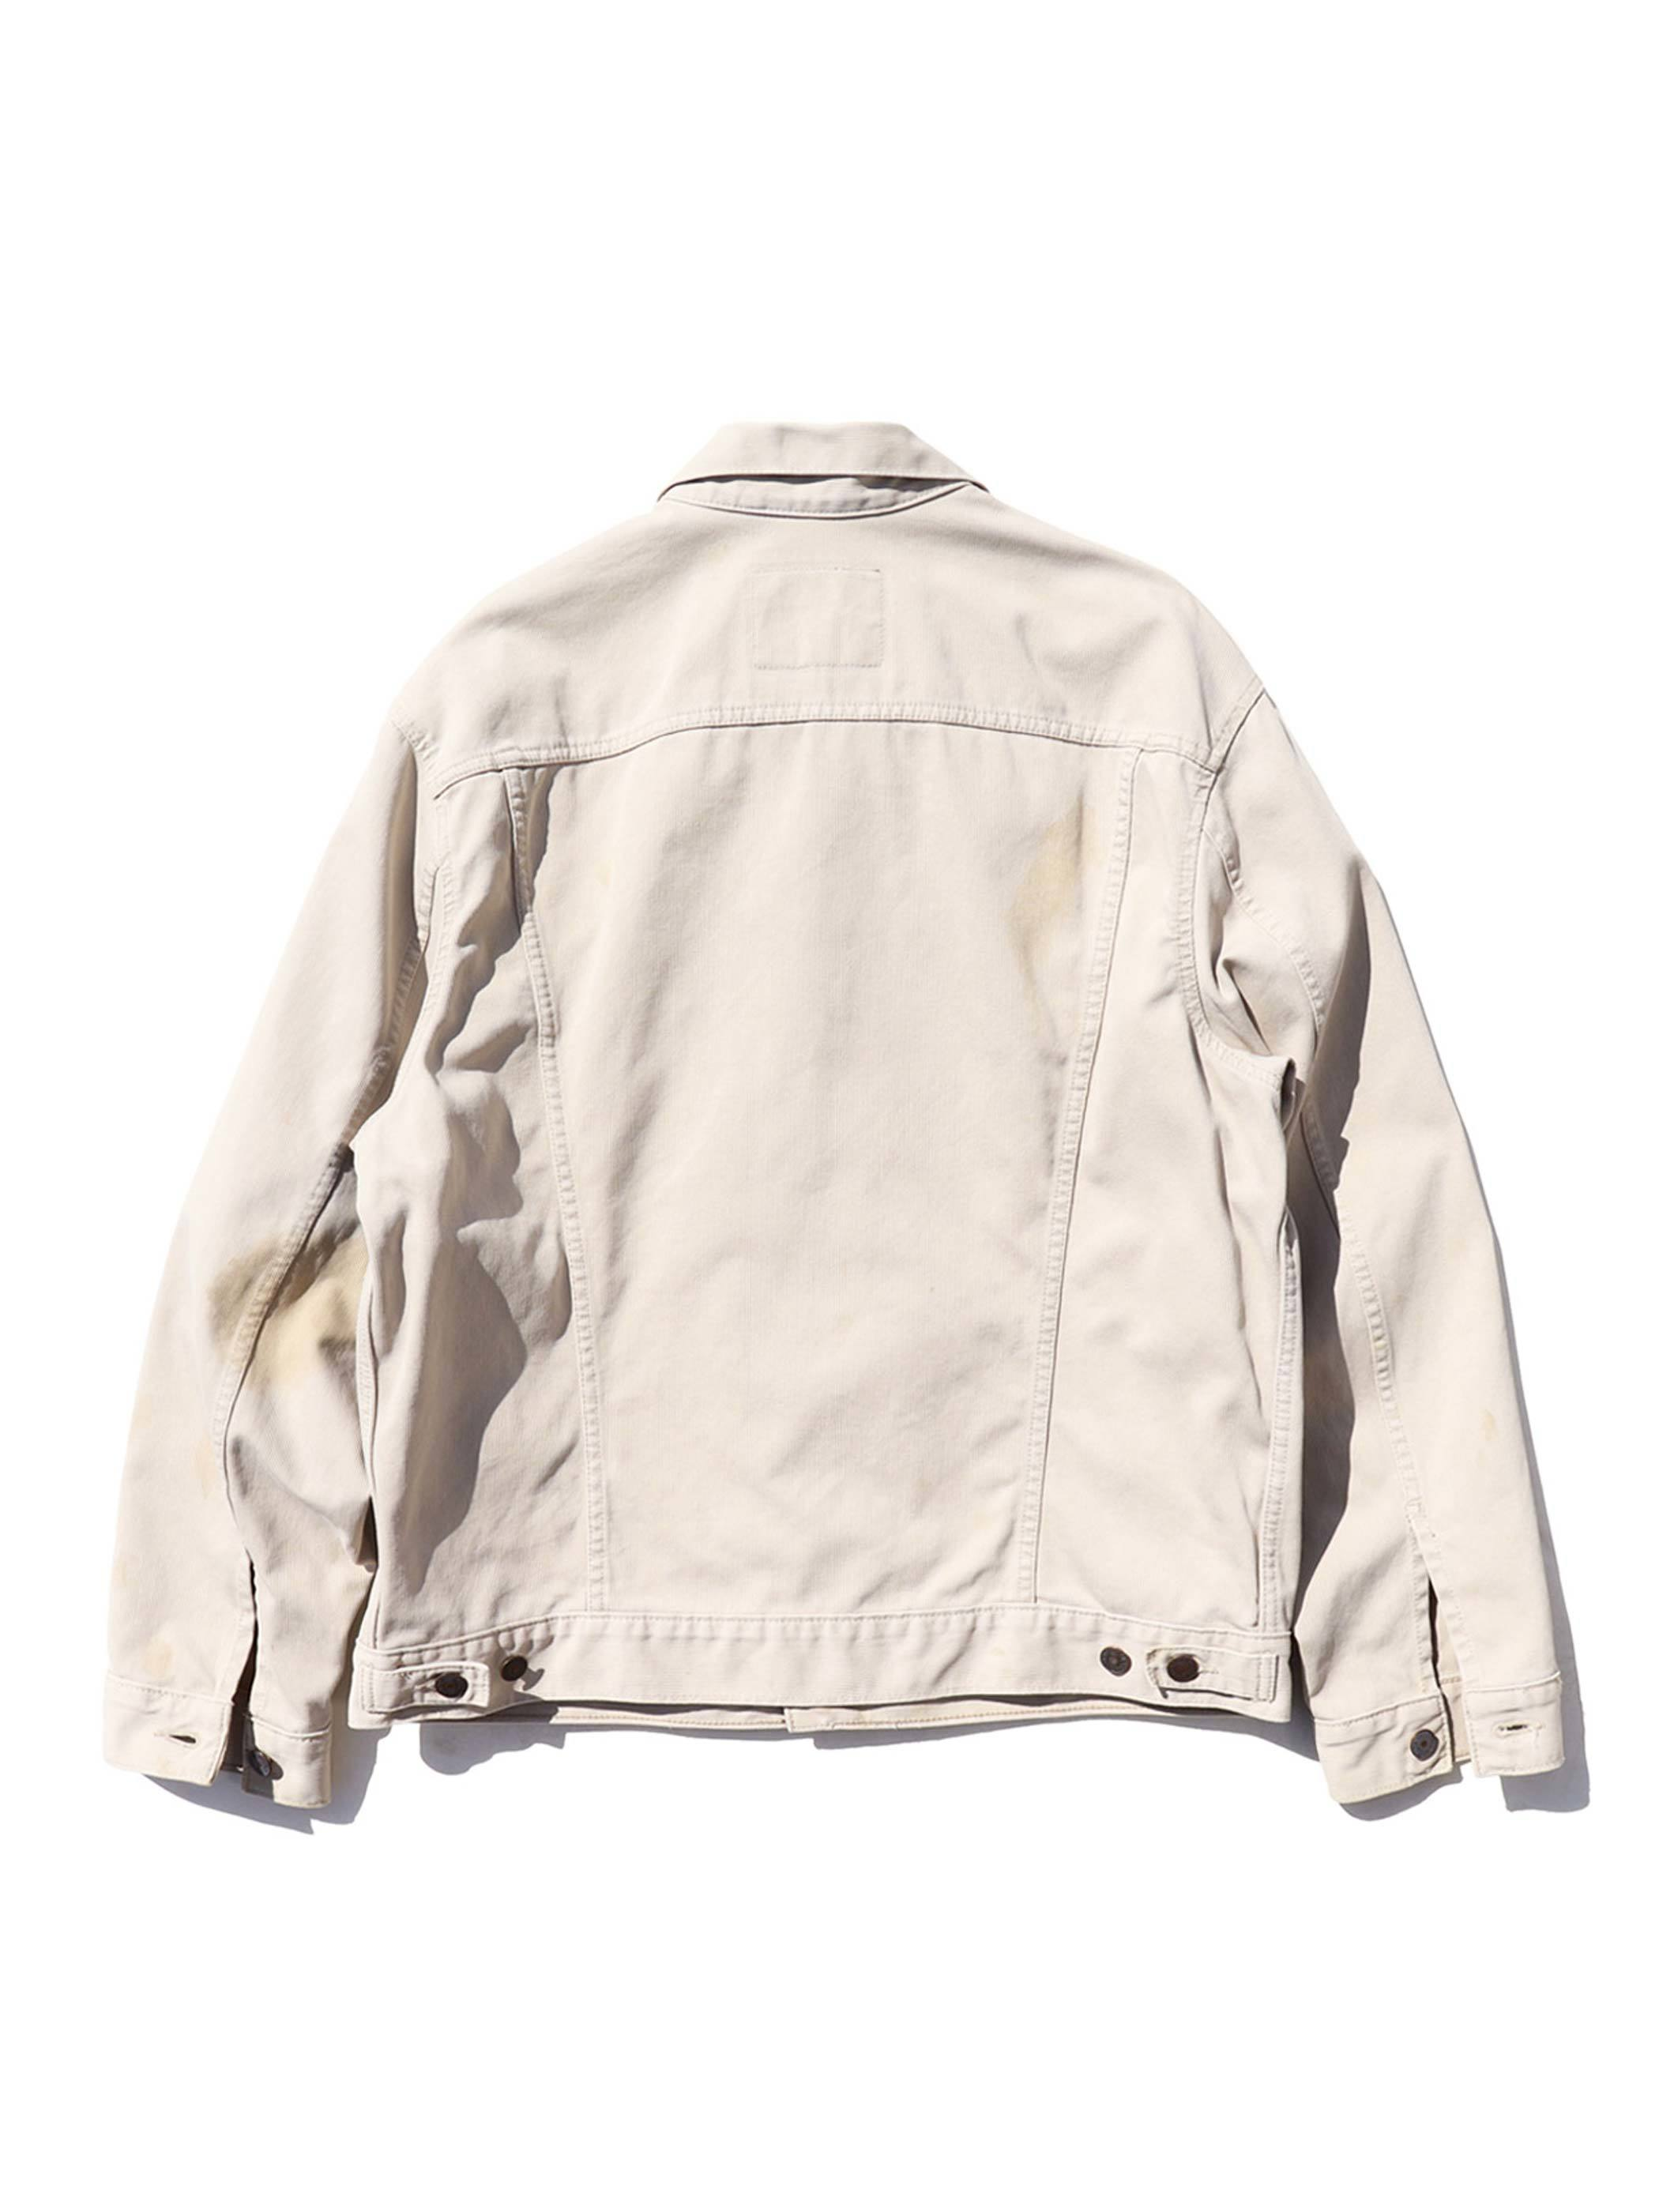 90's EURO LEVI'S 70503 Pique Jacket Made In Italy [L]